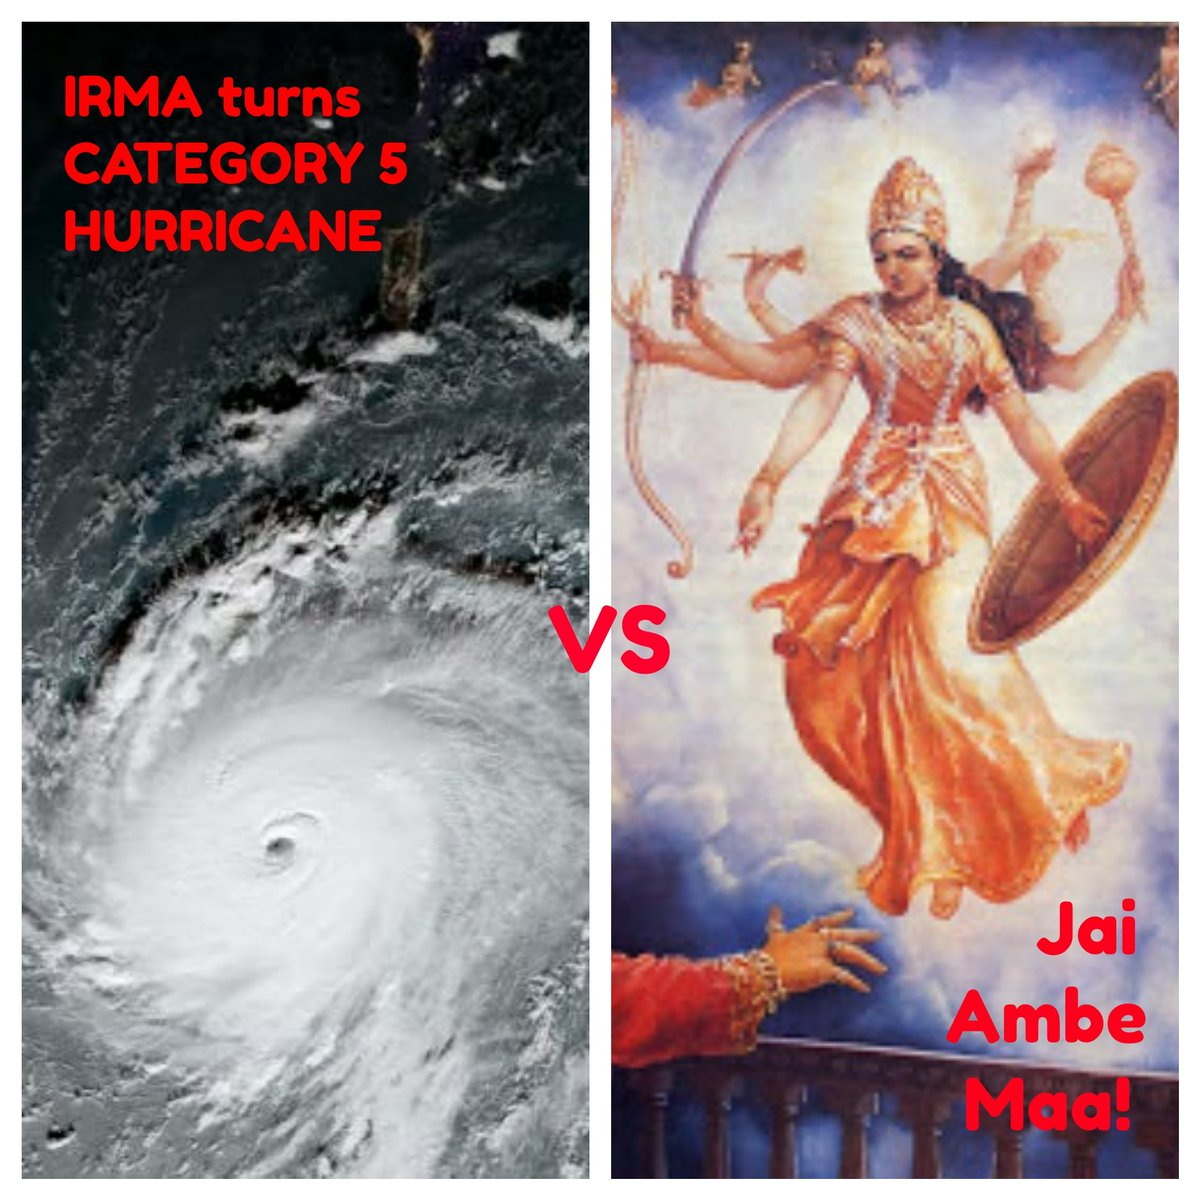 #Navratri2017 for Gujjus in #Florida be like: IRMA vs Ambe Maa!  #IrmaHurricane #Irma2017 #Hurricane #IrmaHurricane2017 #Gujarati #Irma #usa https://t.co/JG9VxLPW0x